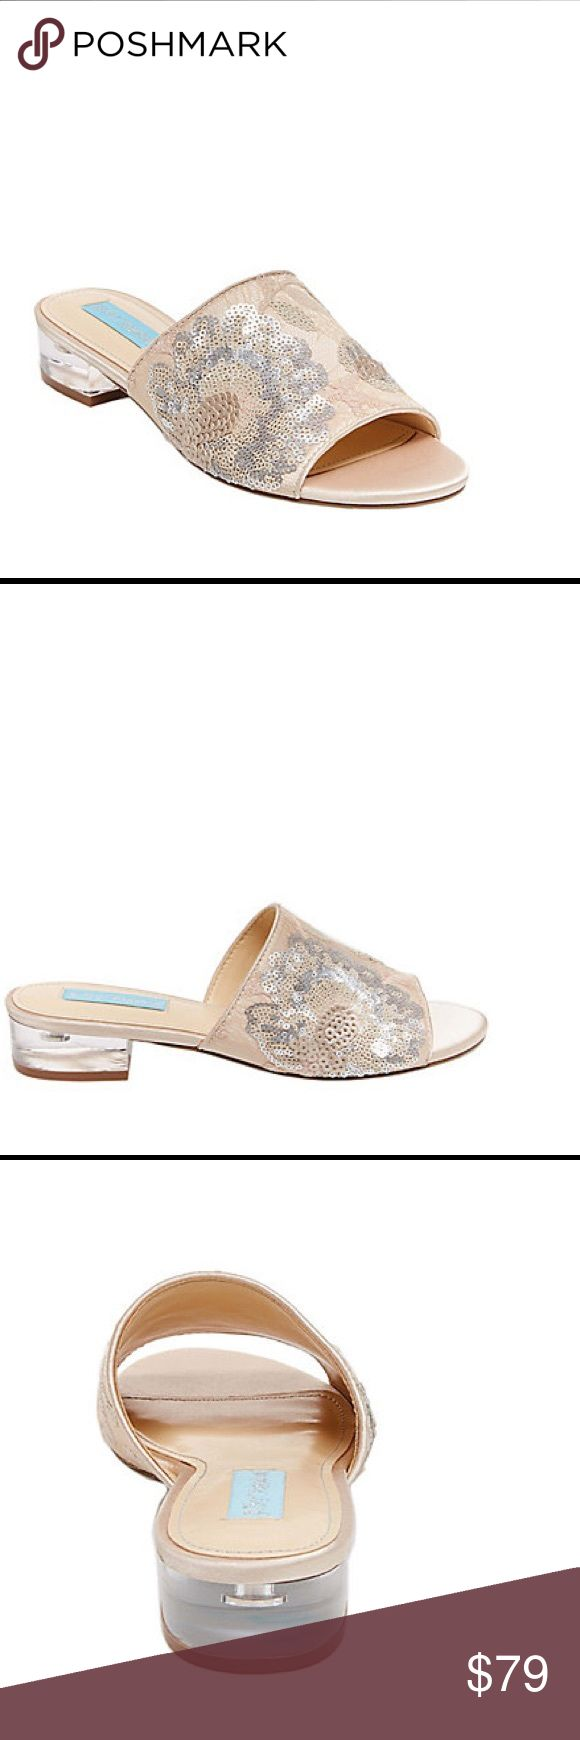 🆕 Blue by Betsey Johnson SR-Ryder mules champagne When it comes to these blush pink slides from Betsey Johnson, luxurious detail is in no short supply. Delicate lace amplified by abstract floral embroidery and matte silver sequins cover the uppers of these marvelous mules, as their lucite block heels provide ultra-stylish support for such a sophisticated look.  Man-made materials.  Heel measures 1.25 inches.  Brand new in box. Retail price $129.  Smoke free and pet free. Betsey Johnson…